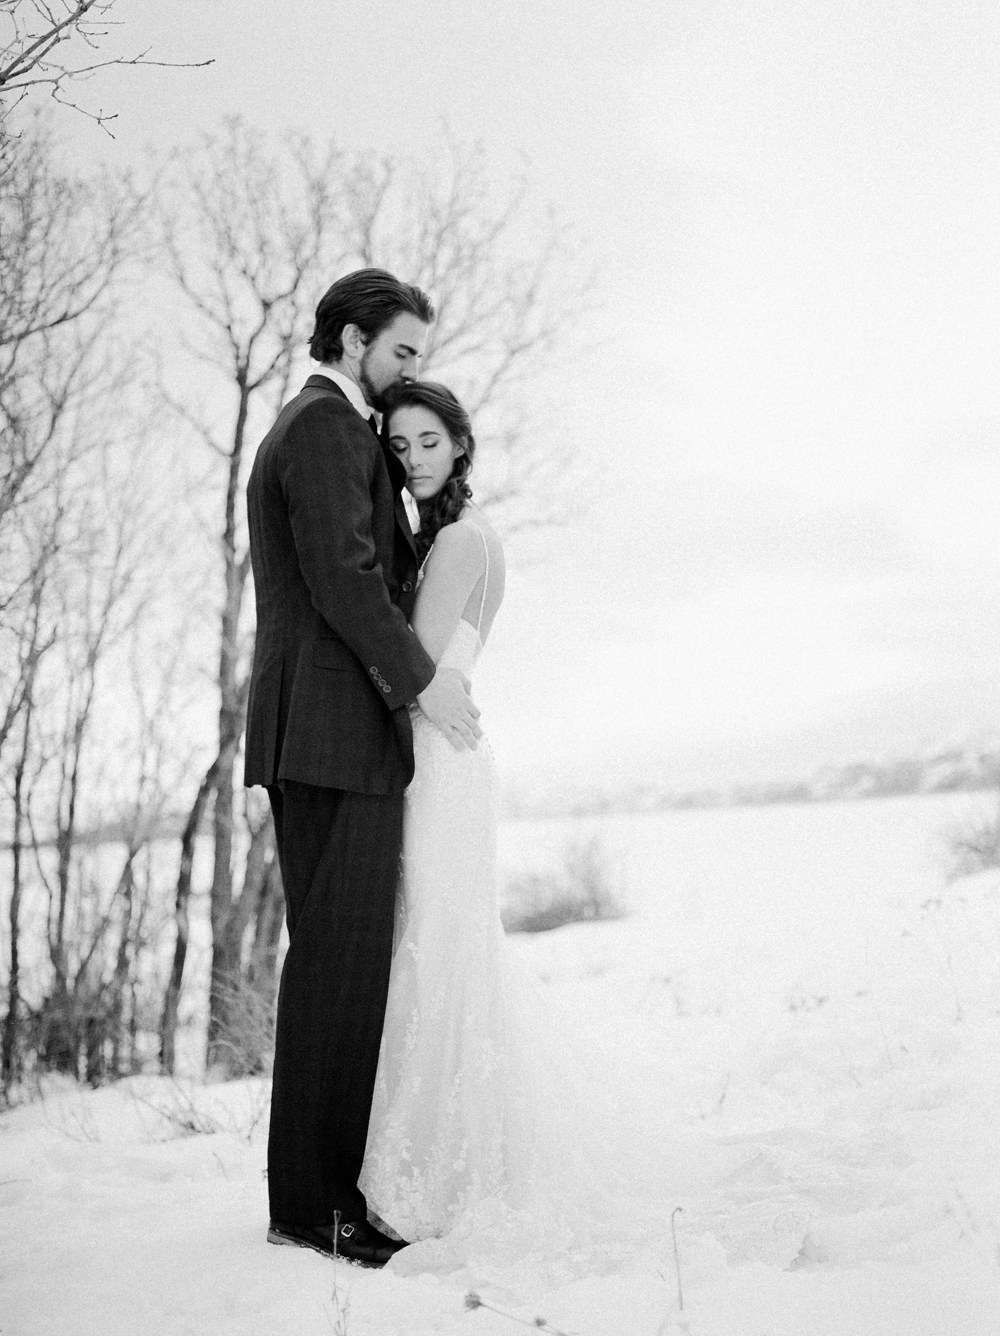 Christine-Gosch-Utah-film-photographer-wedding-mountains-snow-snowy-destination-6.jpg